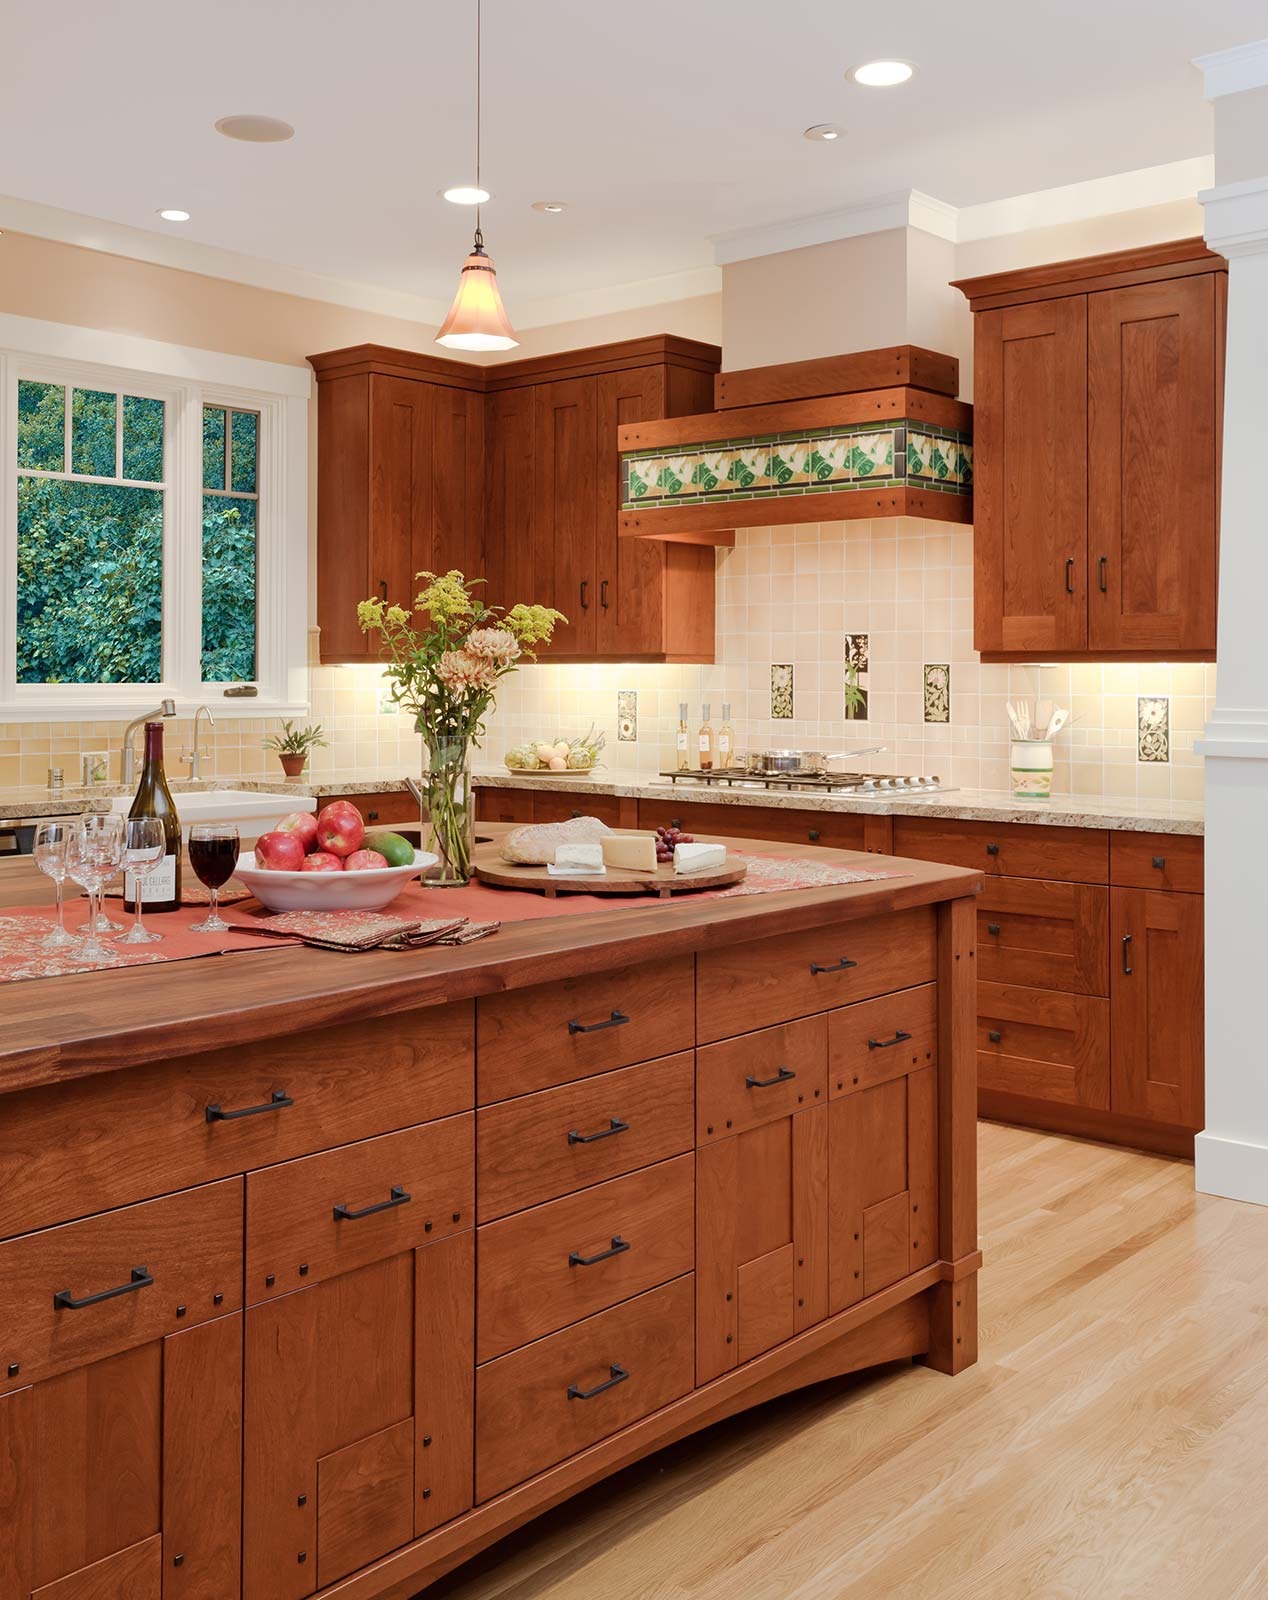 The Top High End Cabinets For Your Upscale Kitchen Remodel